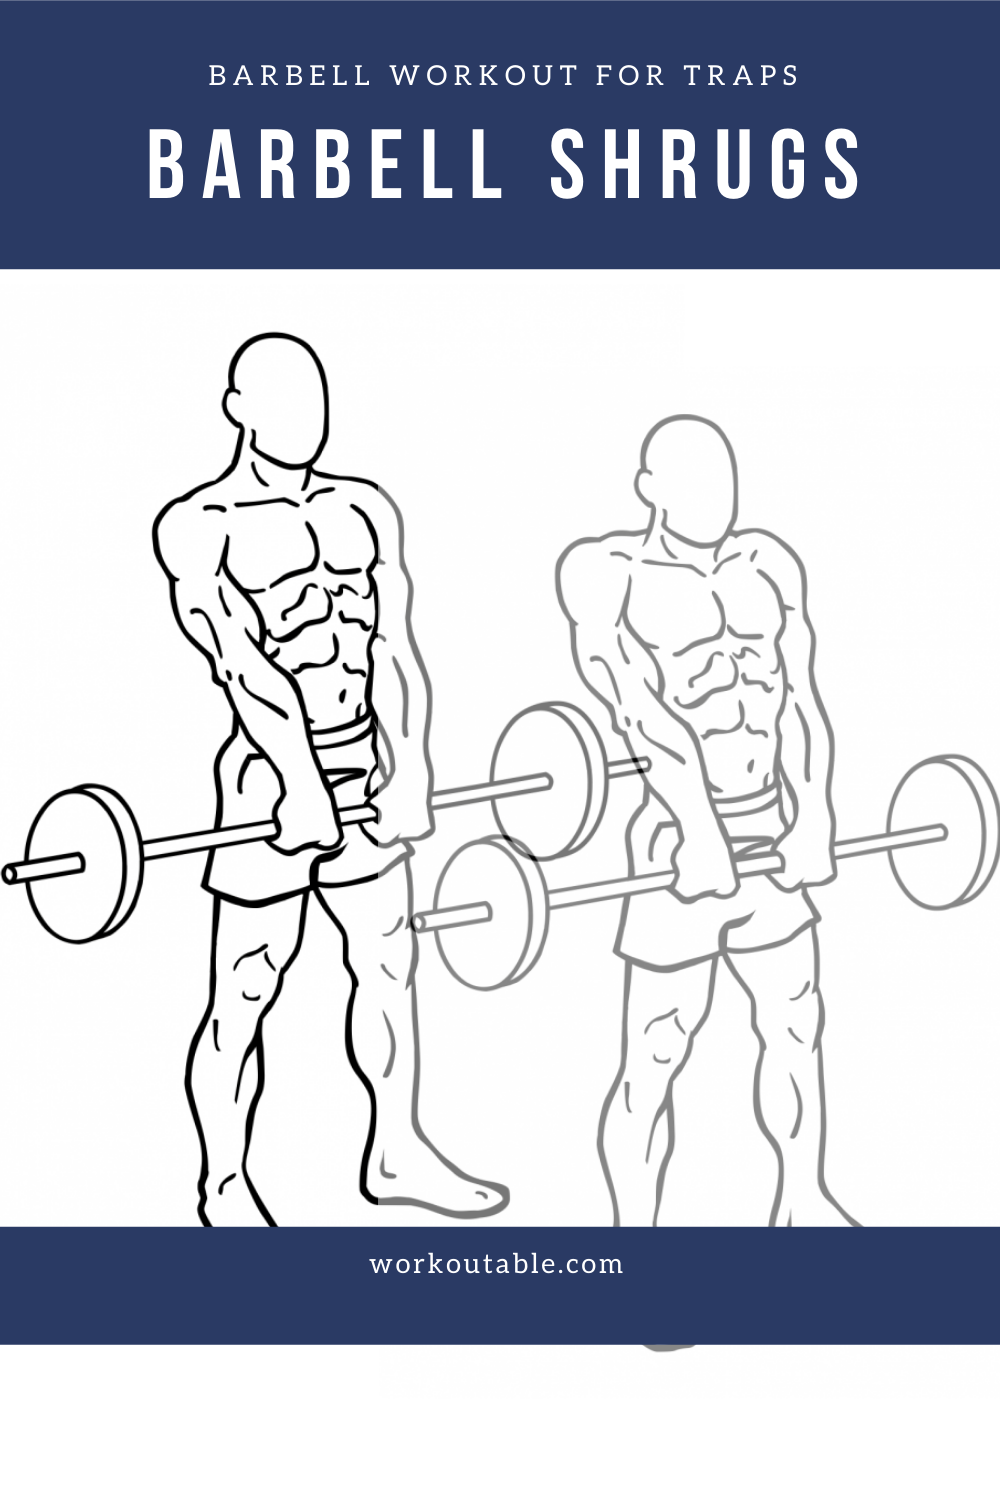 trap workout with barbells - barbell shrugs